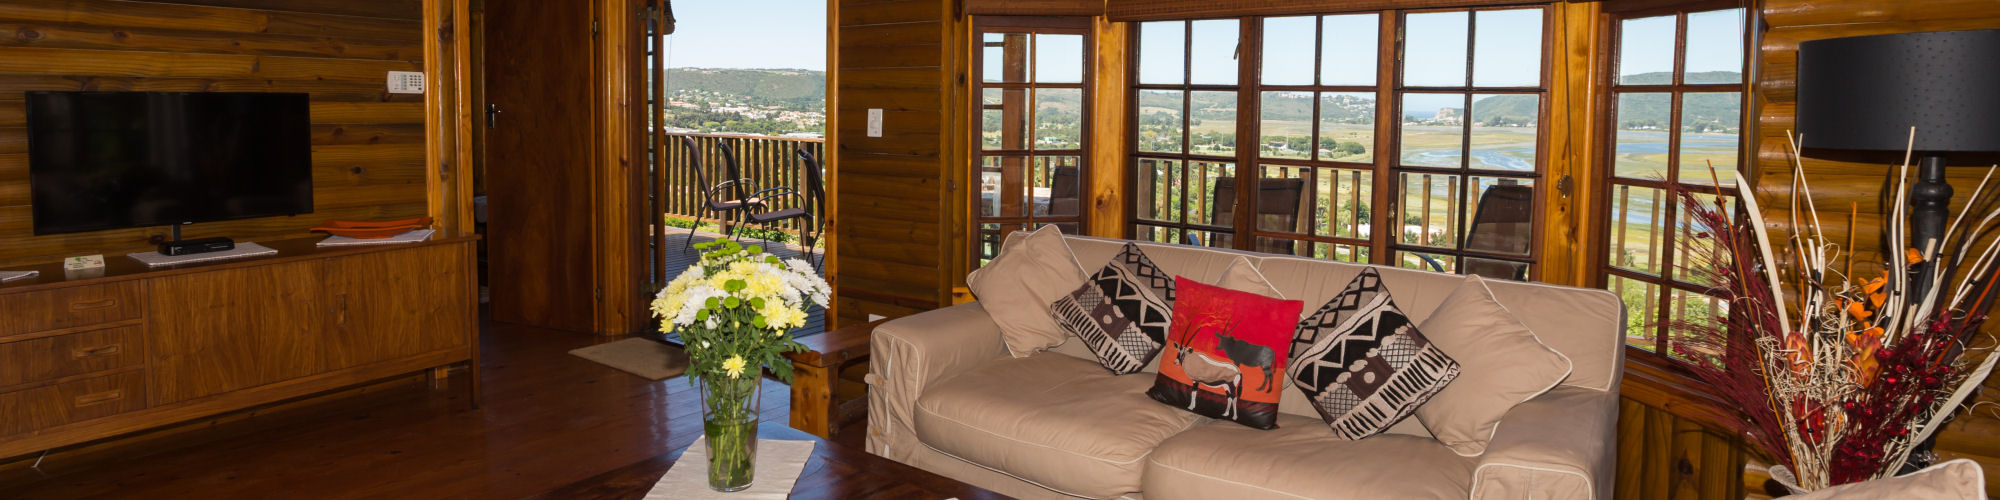 Big Tree House Lodge, Knysna Accommodation, Lounge